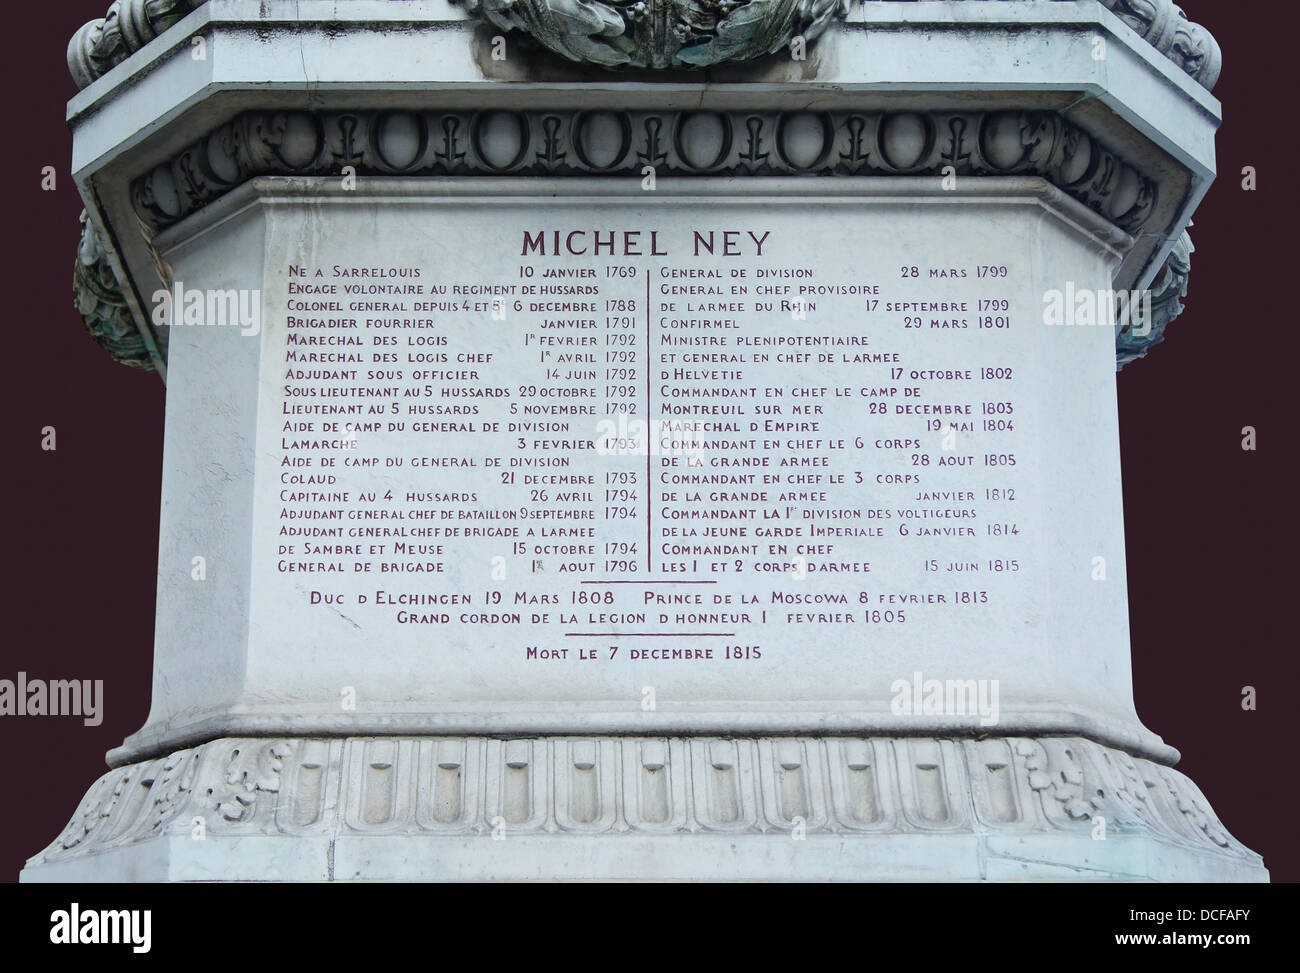 statue of Marshall Michel Ney (The Bravest of the Brave) in Paris, relating his military career during the Revolution - Stock Image